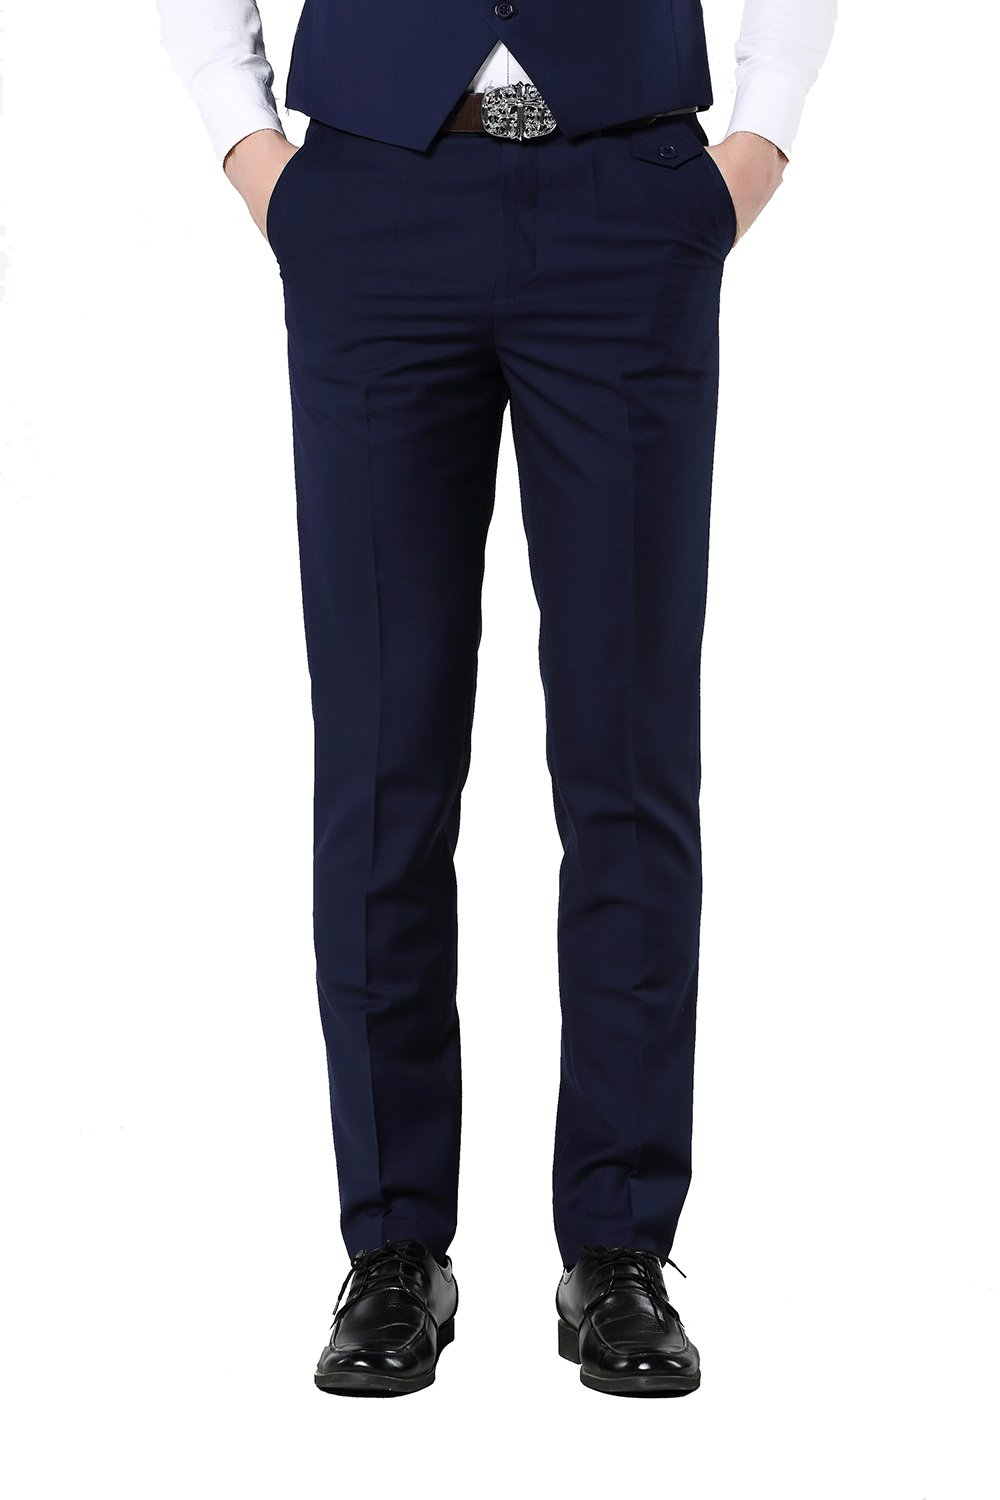 UNINUKOO Men's Colorful Casual Suit Pants Slim Fit US Size 38 (Label Size 3XL) Navy